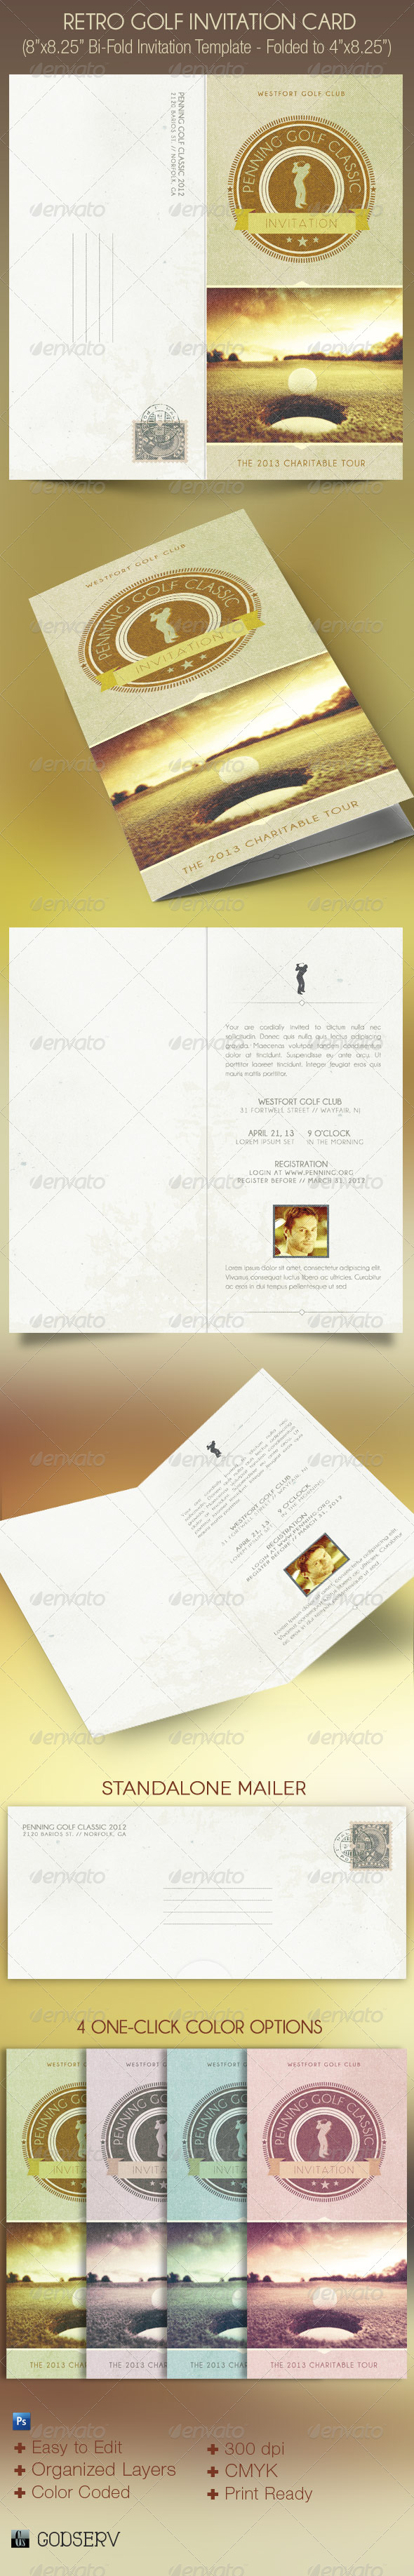 Invitation templates from graphicriver page 25 stopboris Choice Image